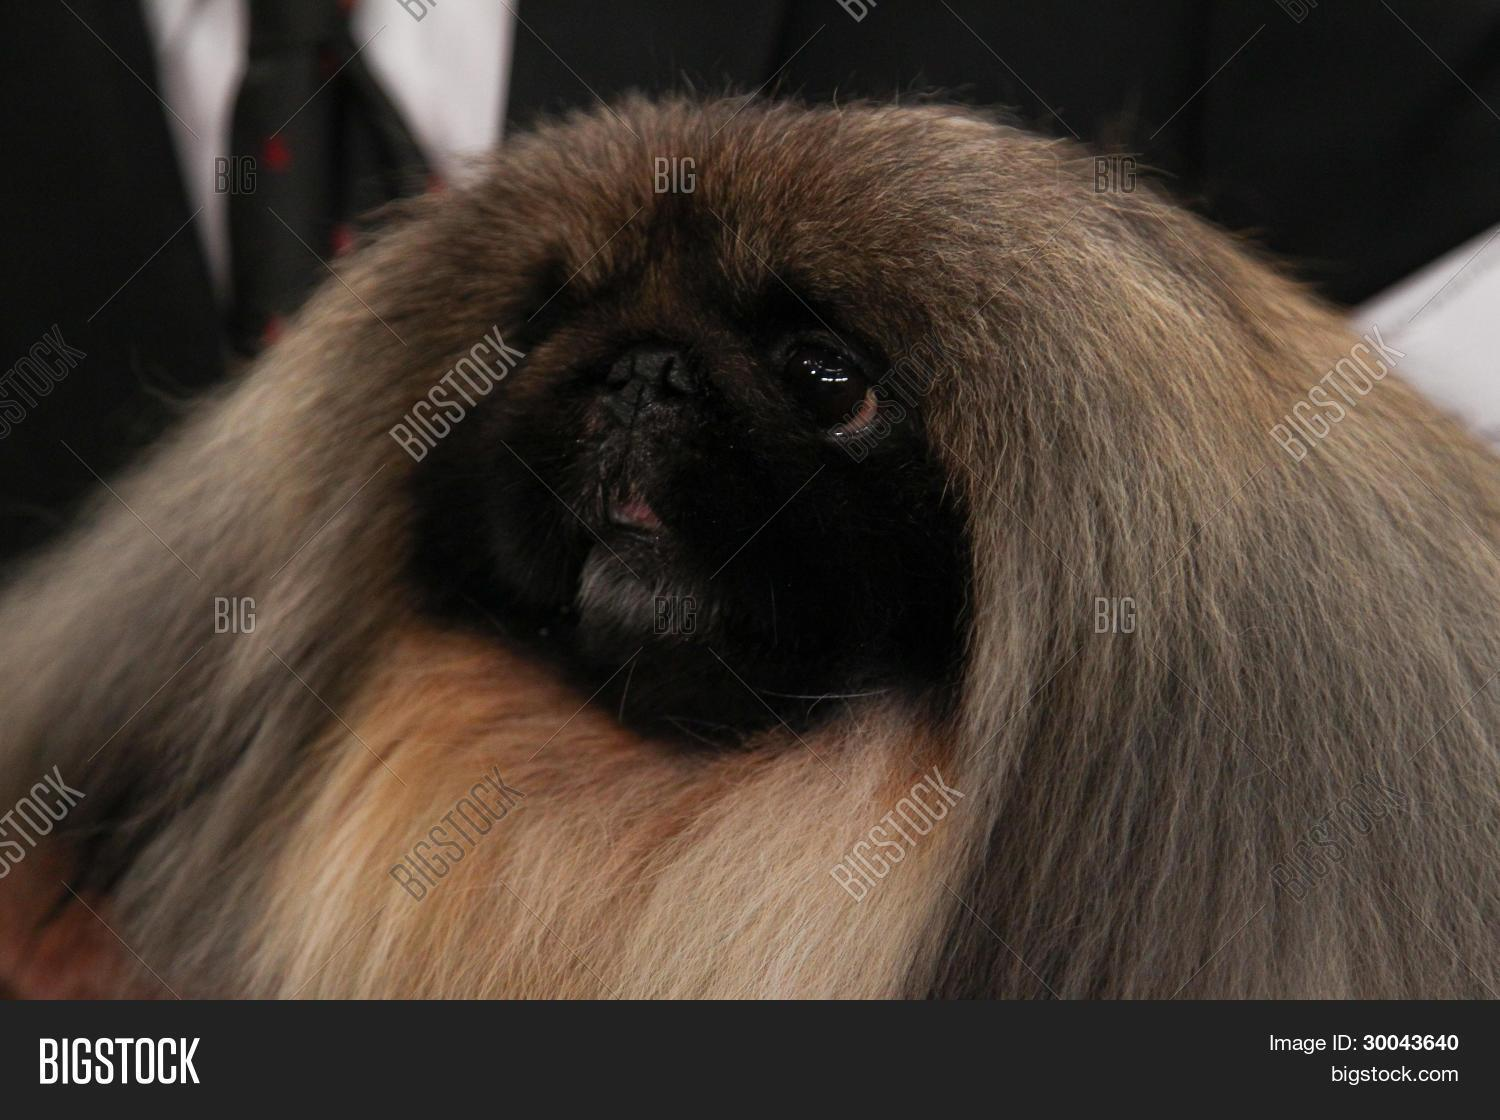 Pekingese Wins Best in Show at the 136th Westminster Kennel Club Dog Show Pekingese Wins Best in Show at the 136th Westminster Kennel Club Dog Show new pics